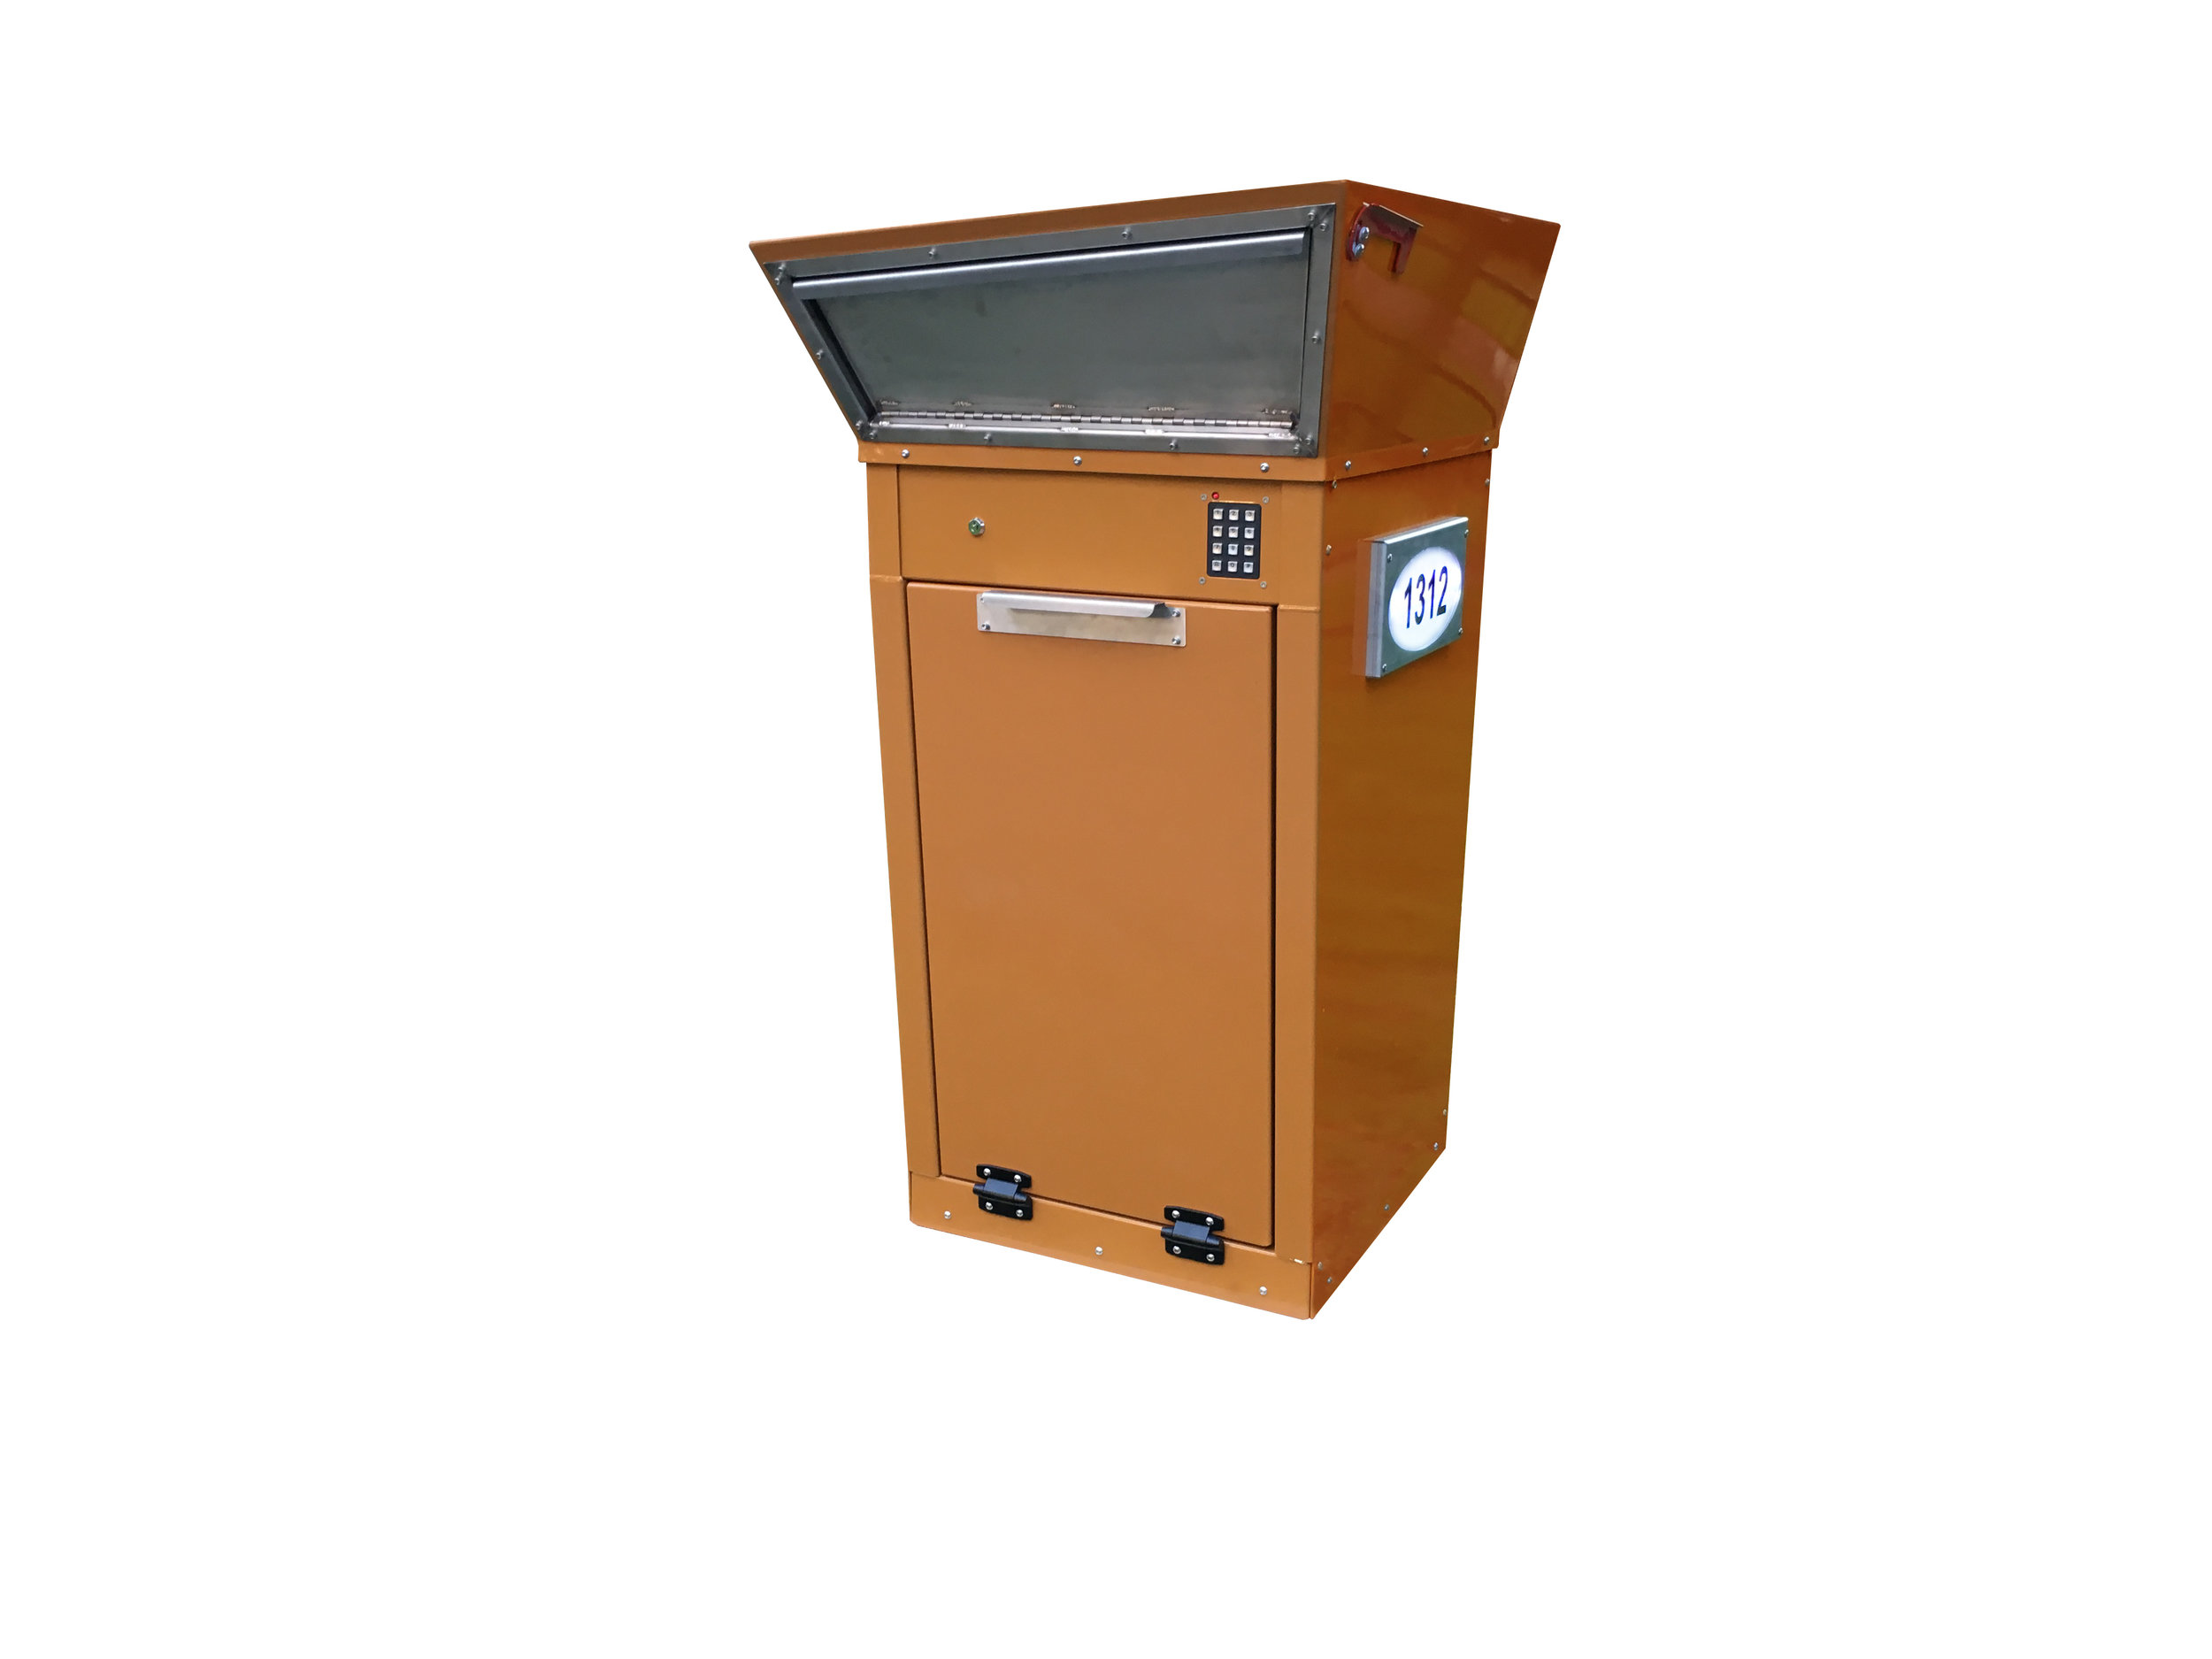 custom finishes and anti-theft mailbox accessories are also available as pictured above. standard powder coat finishes include satin white, satin black, textured copper vein and textured red copper.